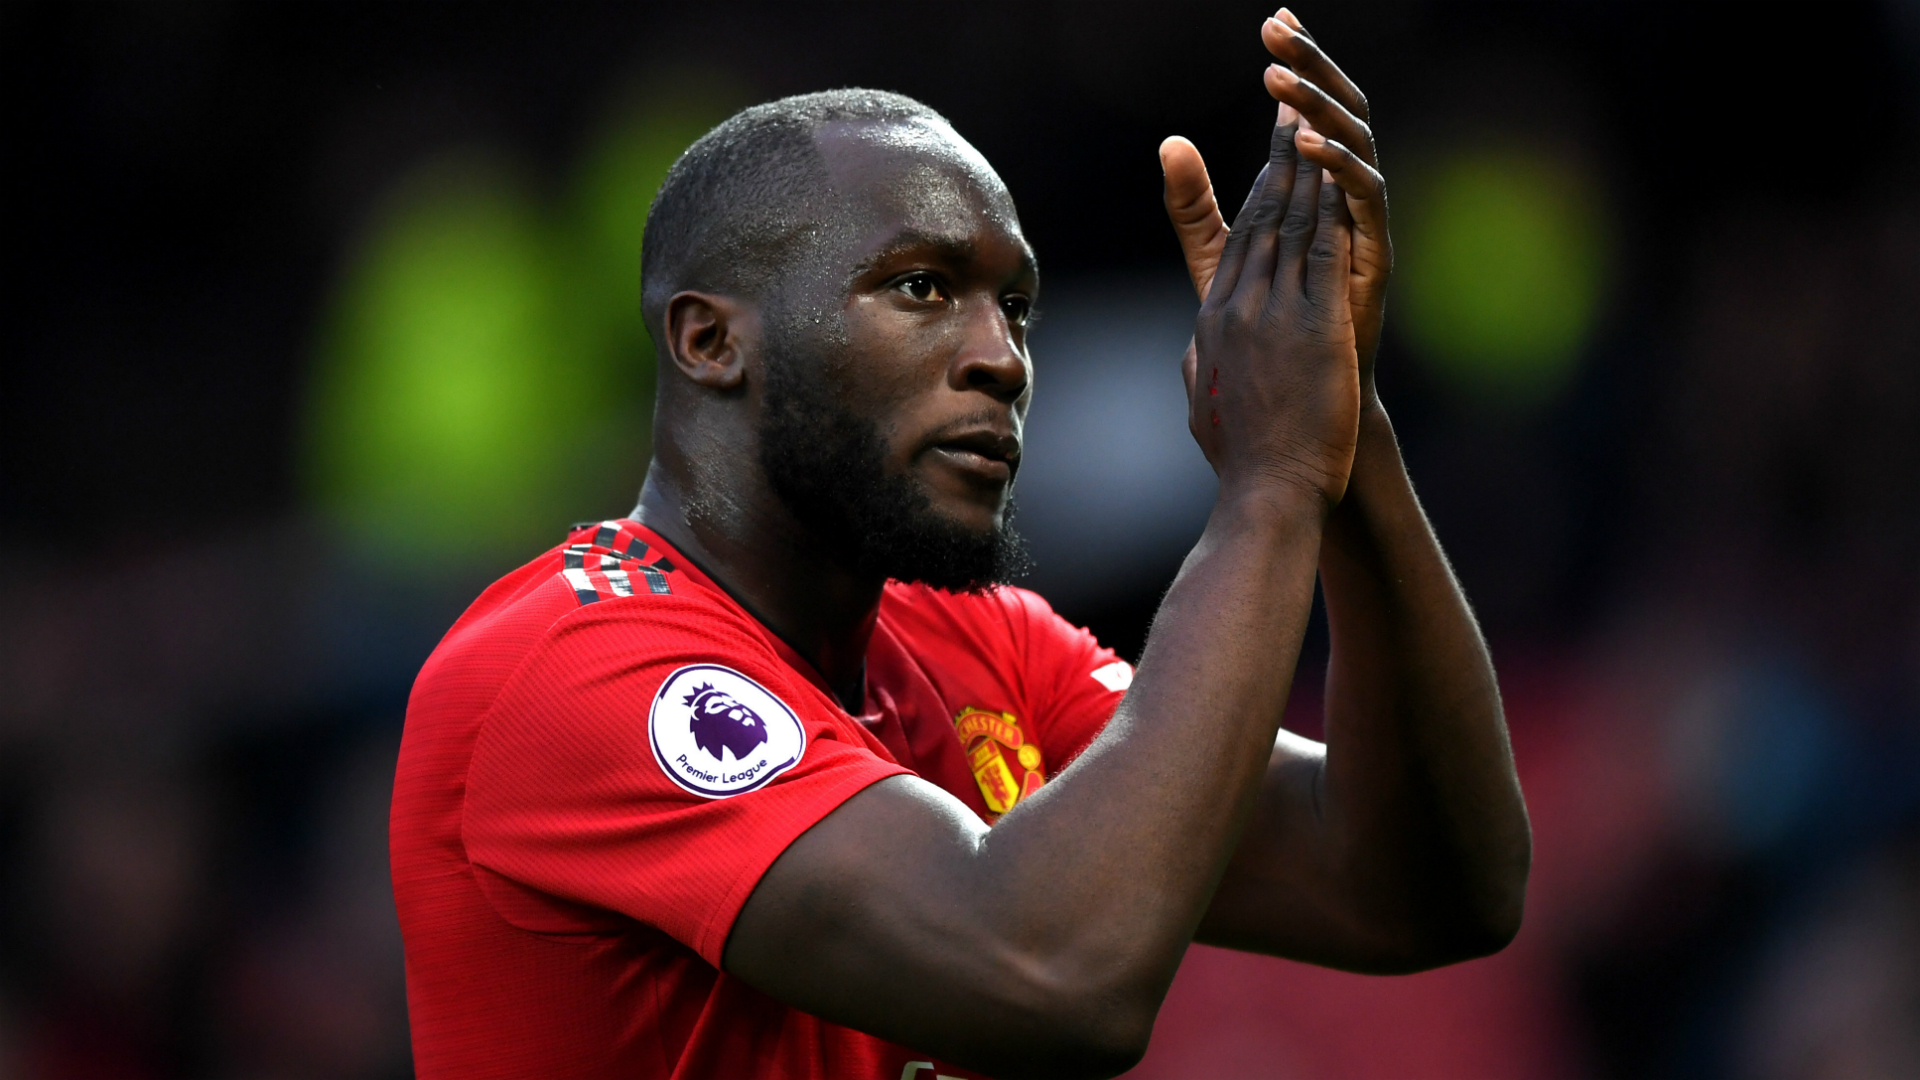 Lukaku to Inter? Nothing is impossible says agent